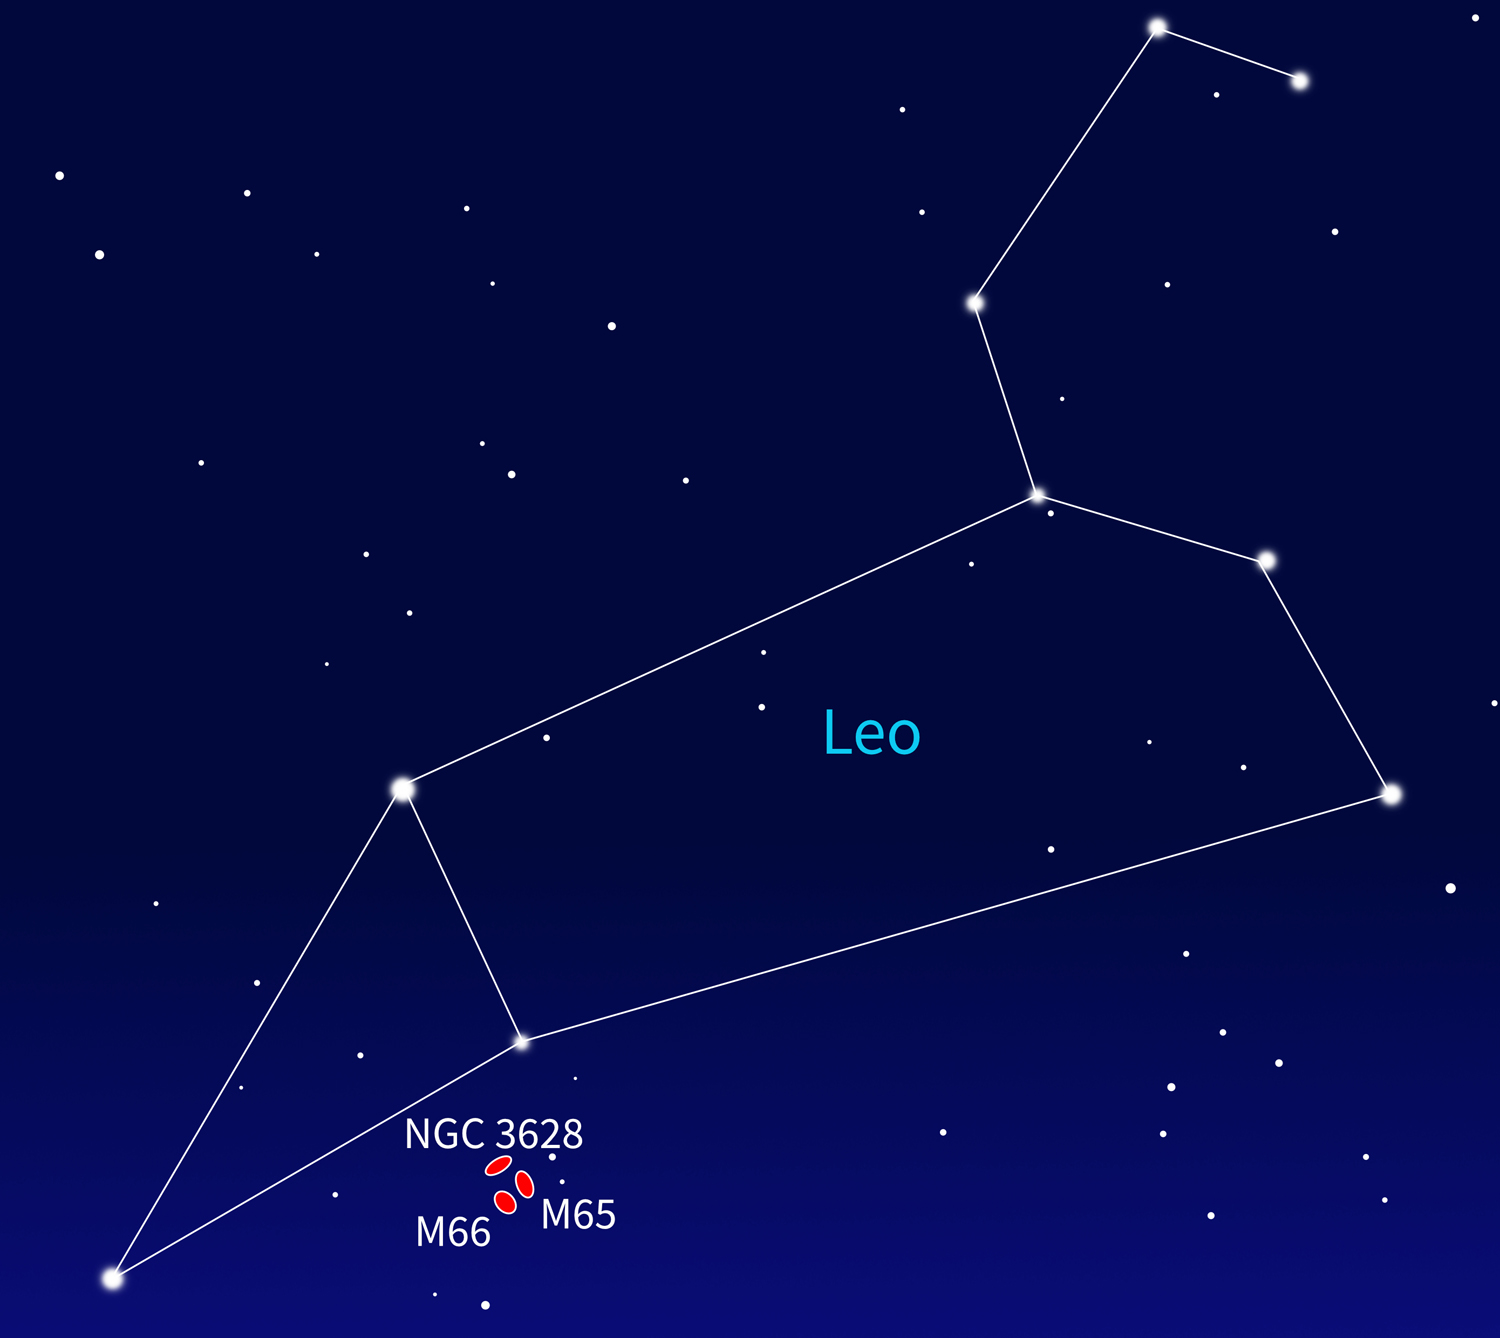 Leo Triplet in the Leo constellation